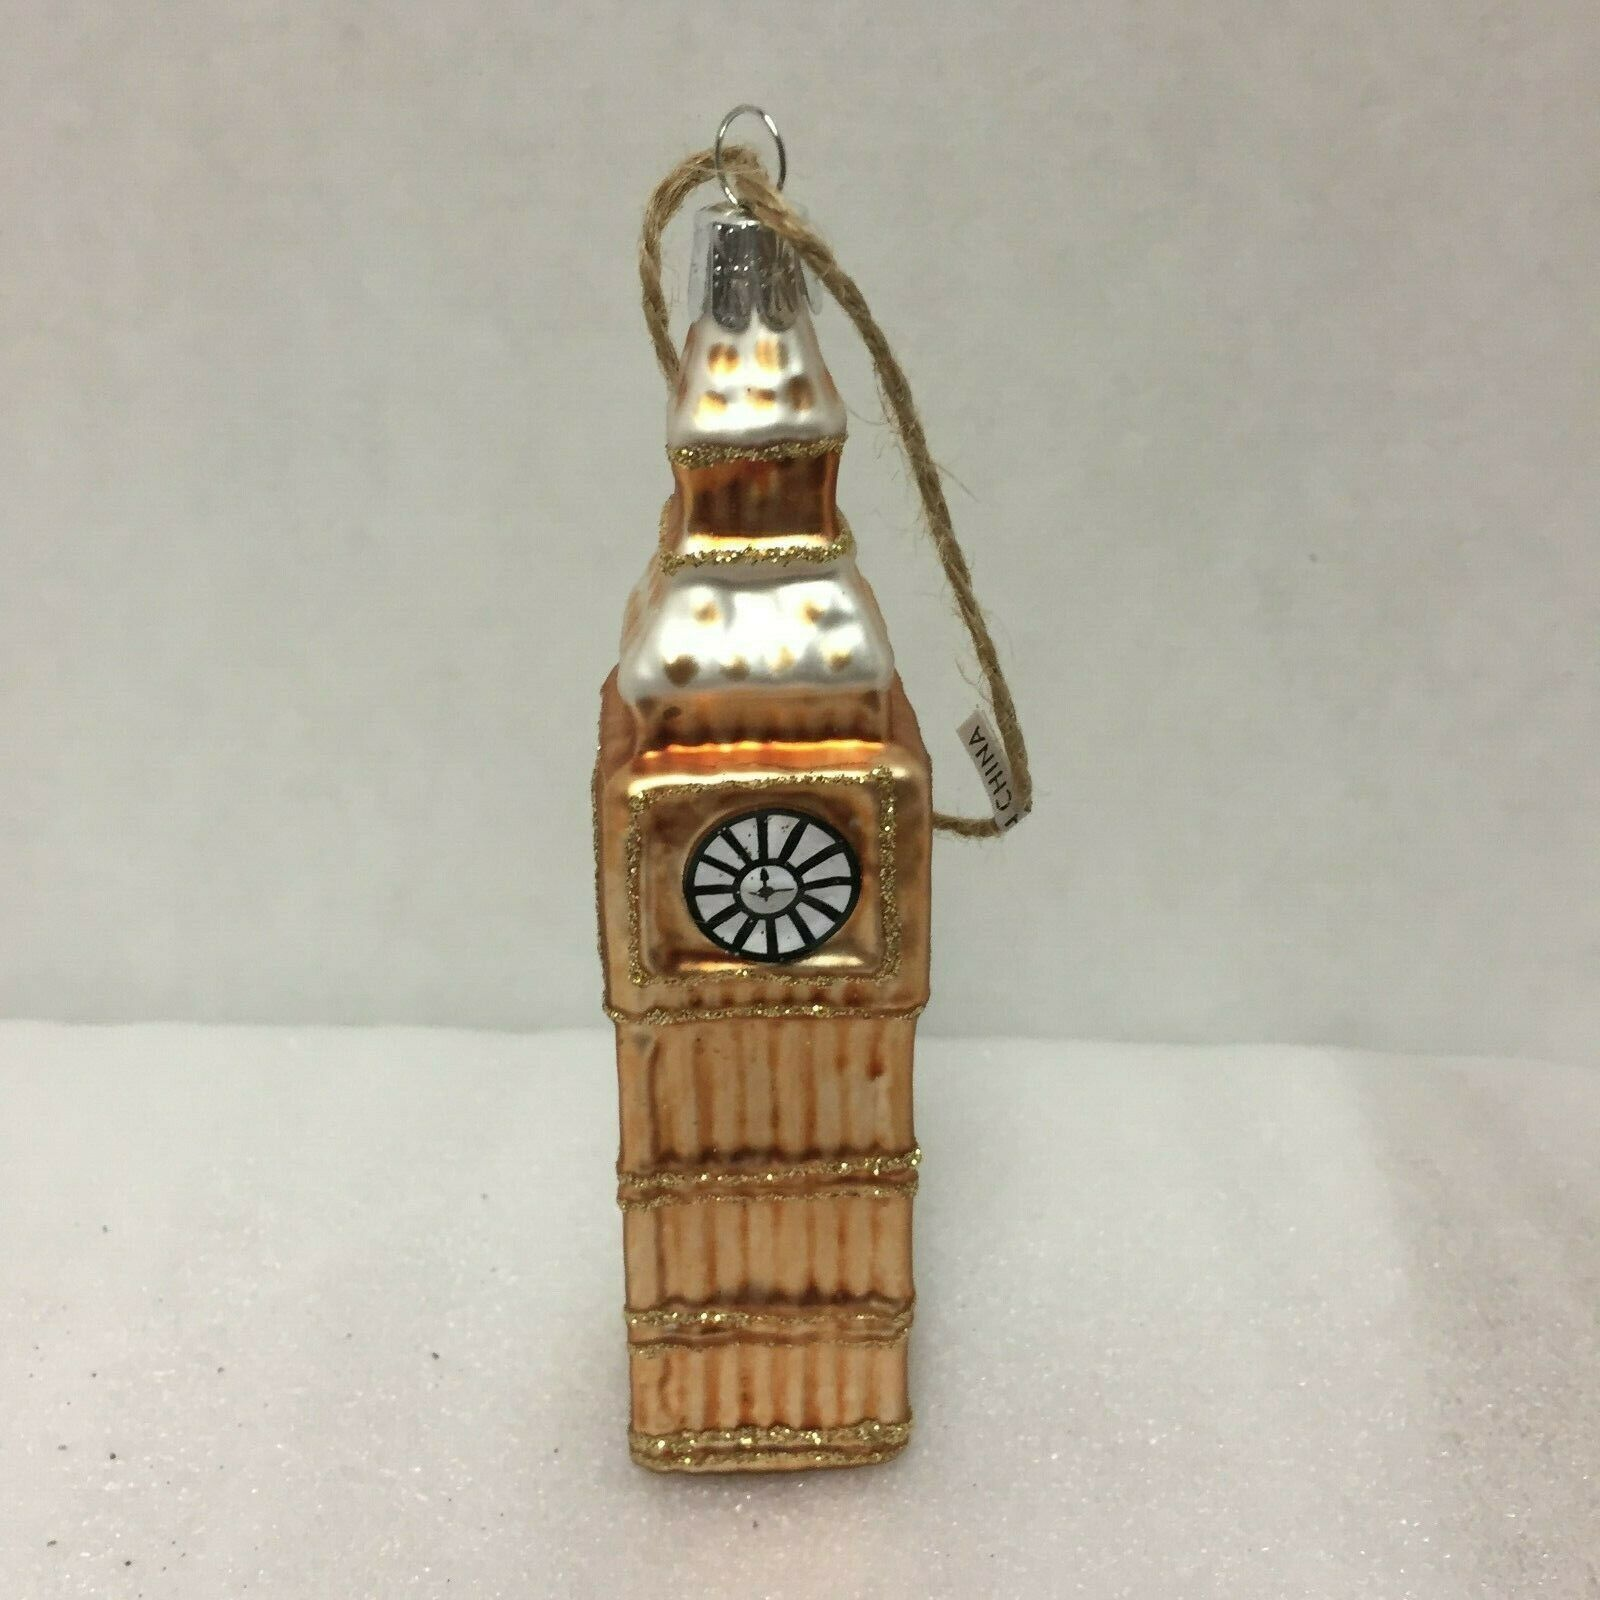 Primary image for Pottery Barn Big Ben Christmas Ornament New Old Stock Glitter London England